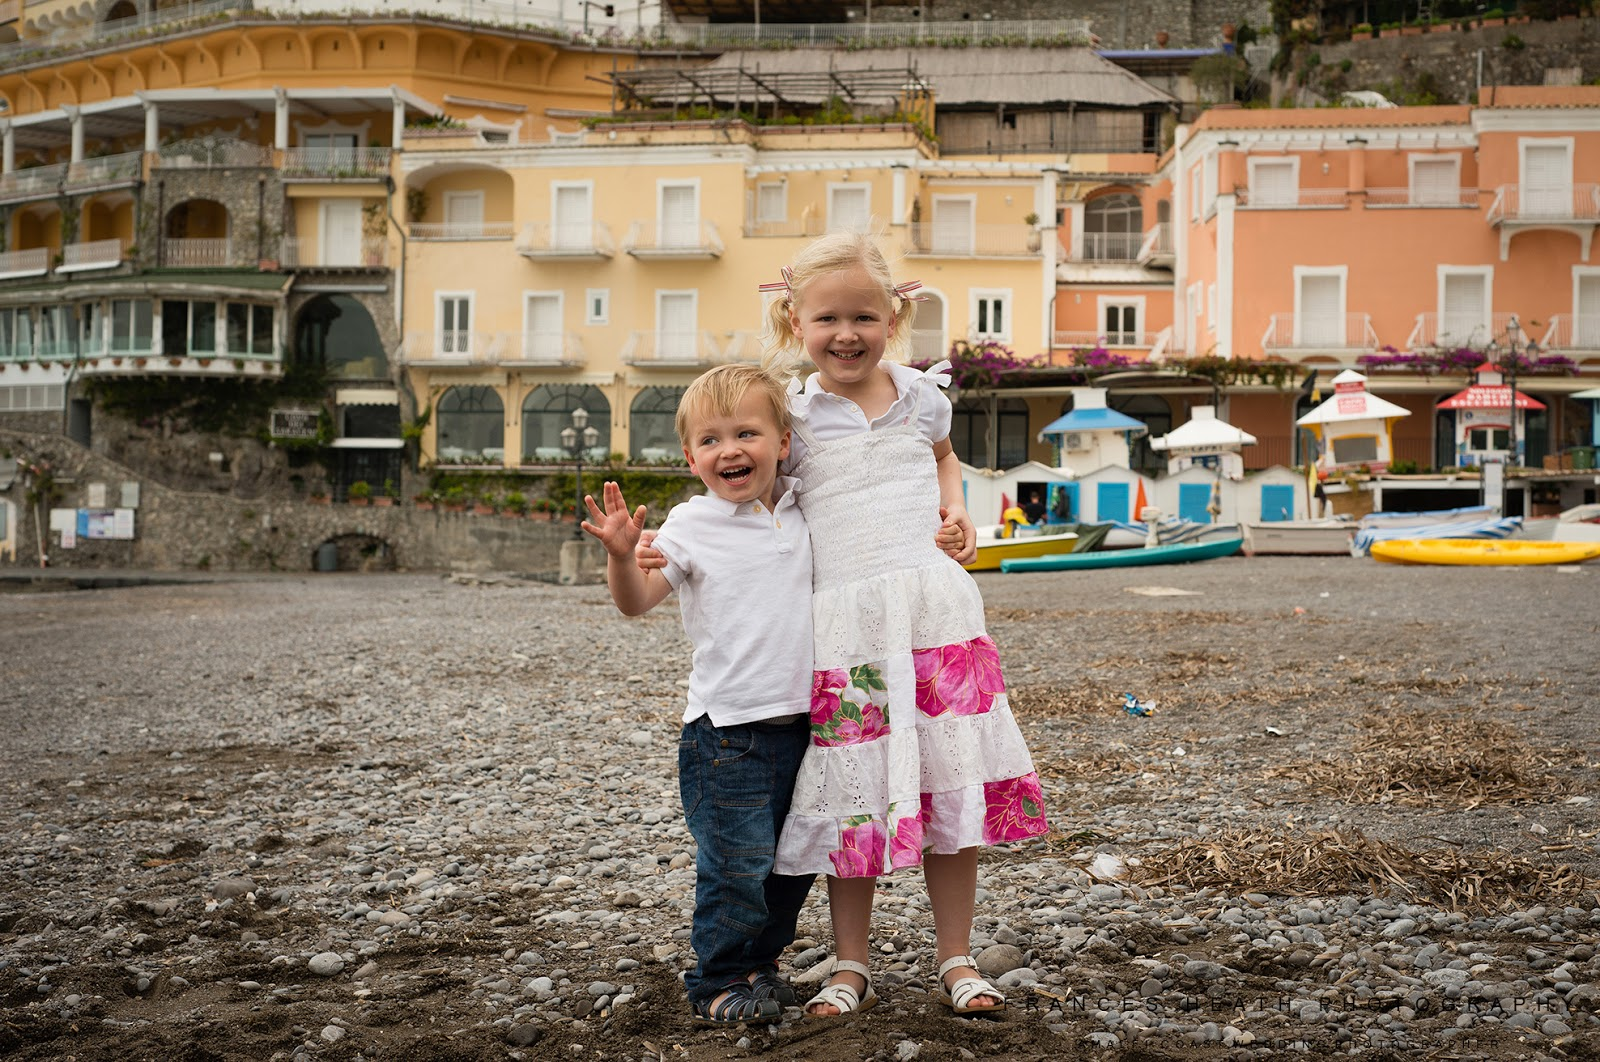 Children's portrait in Positano